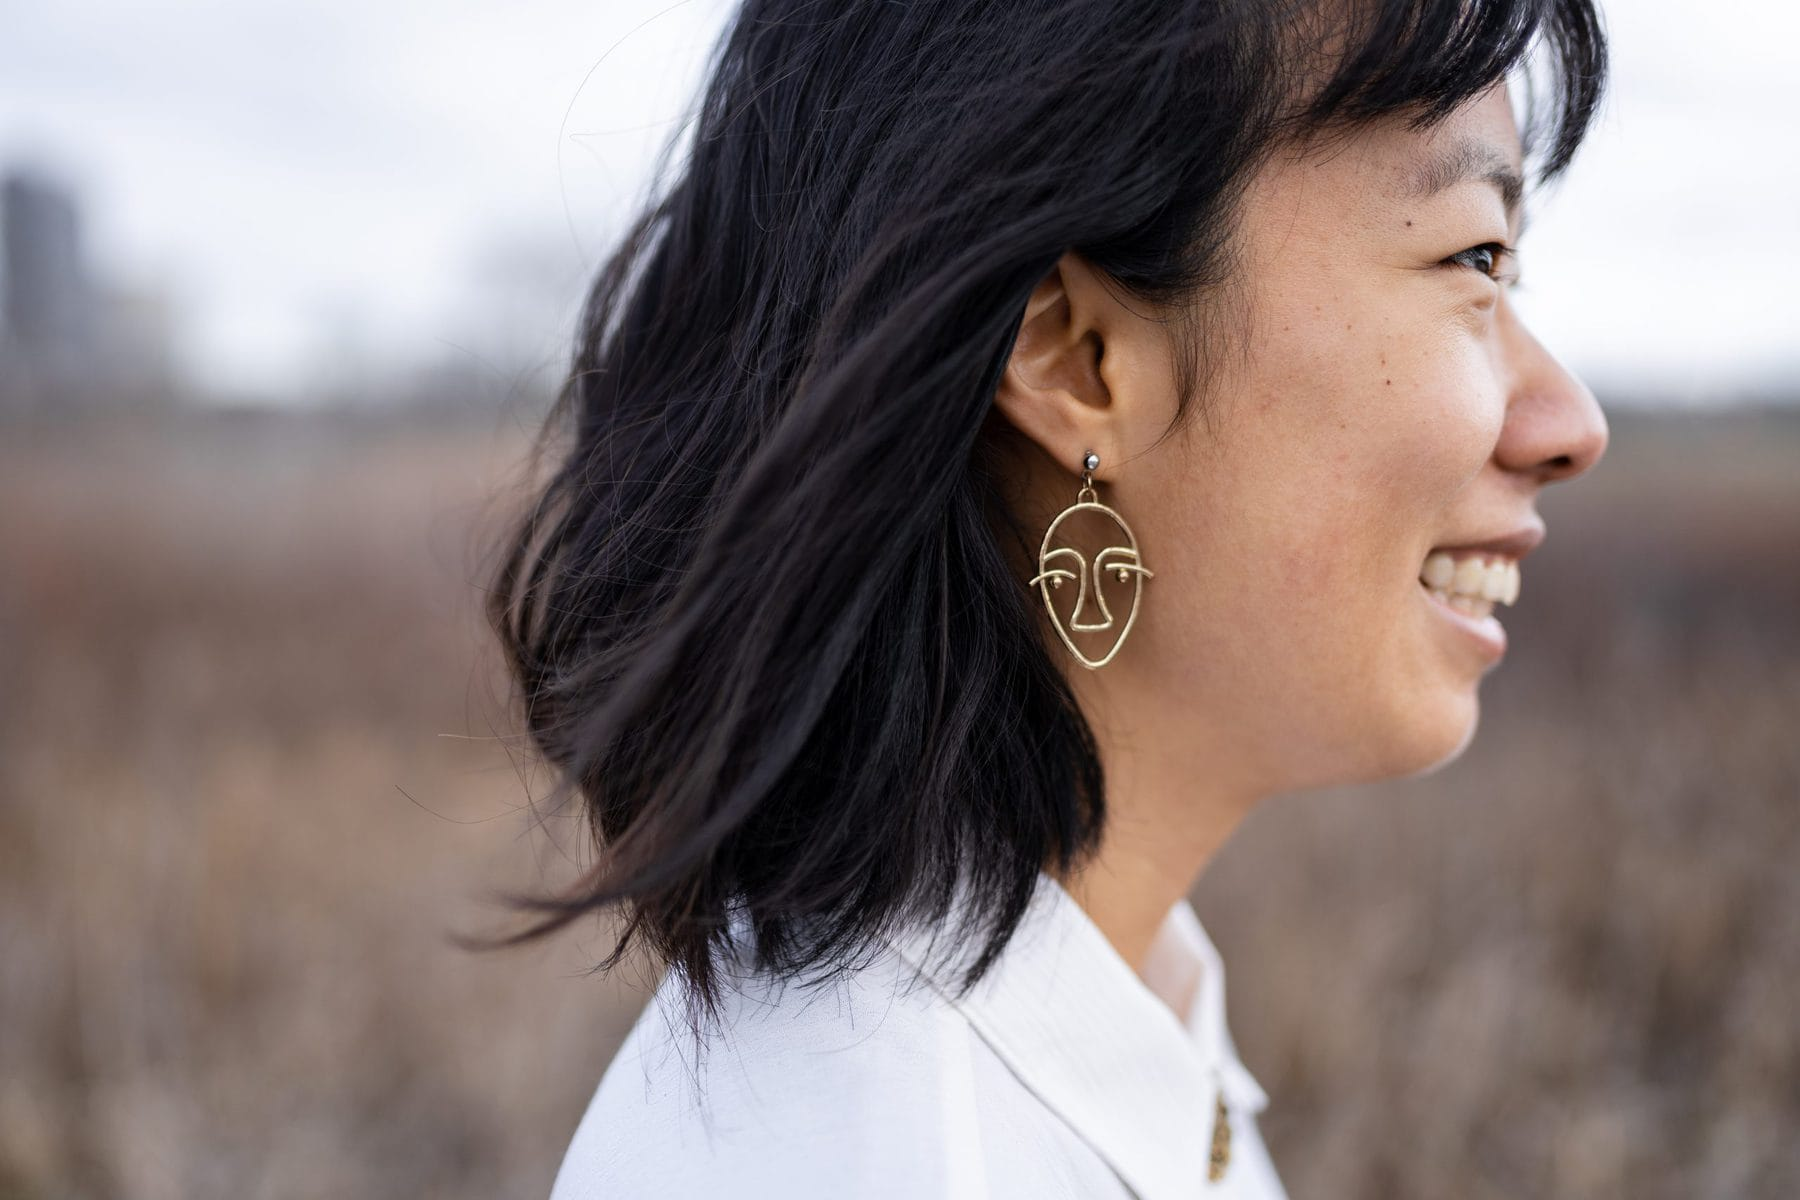 Wearing a thrifted vintage Laura Tyler shirt for $4 and face earrings. In this post, I discuss some common misunderstandings of sustainable fashion and offer practical tips to consume more consciously. | sustainable fashion | thrifted outfit